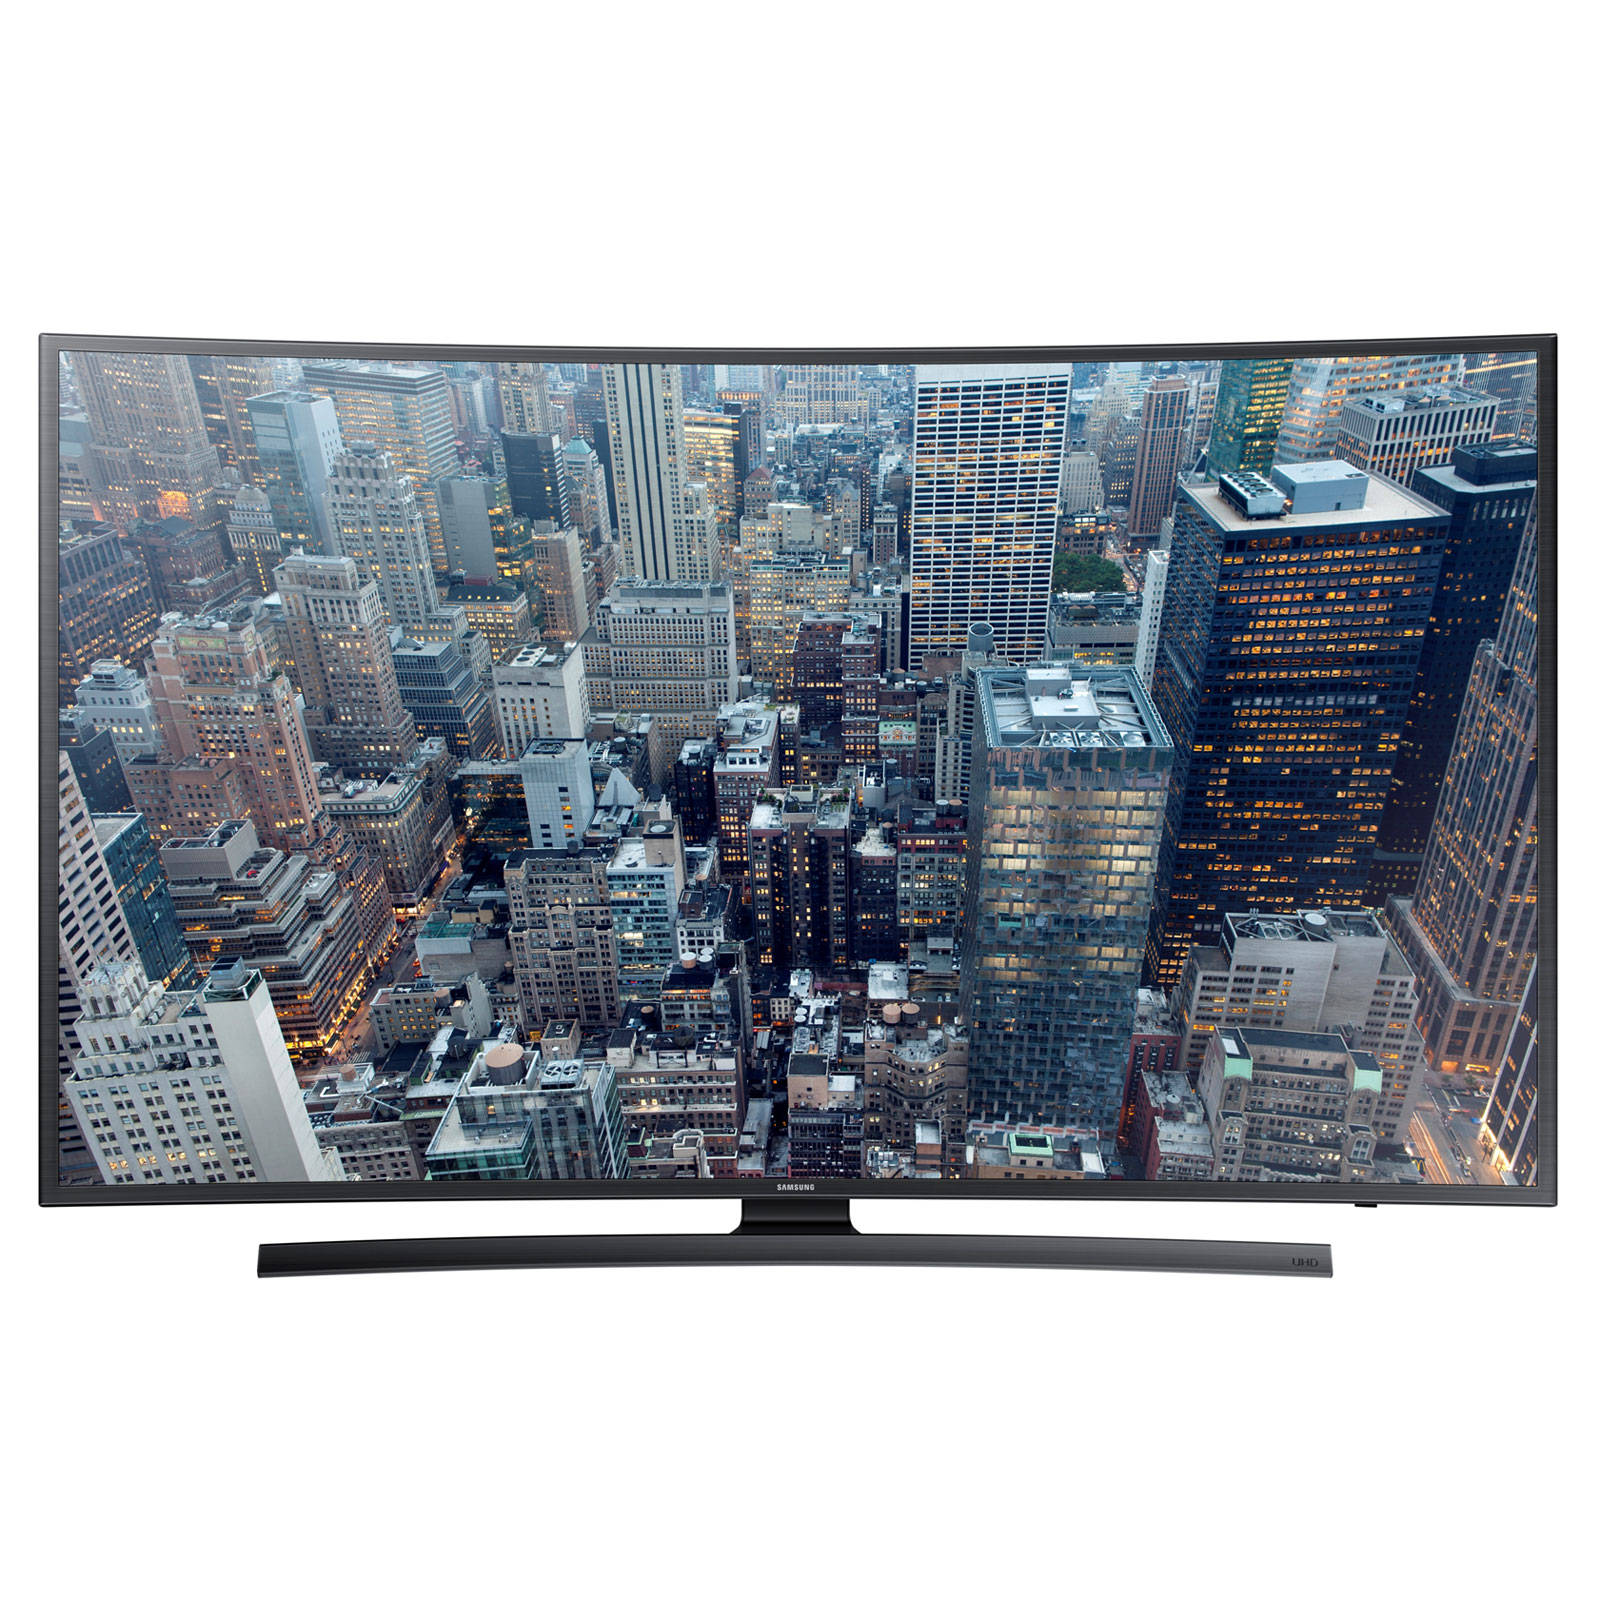 samsung ue55ju6570 tv samsung sur ldlc. Black Bedroom Furniture Sets. Home Design Ideas